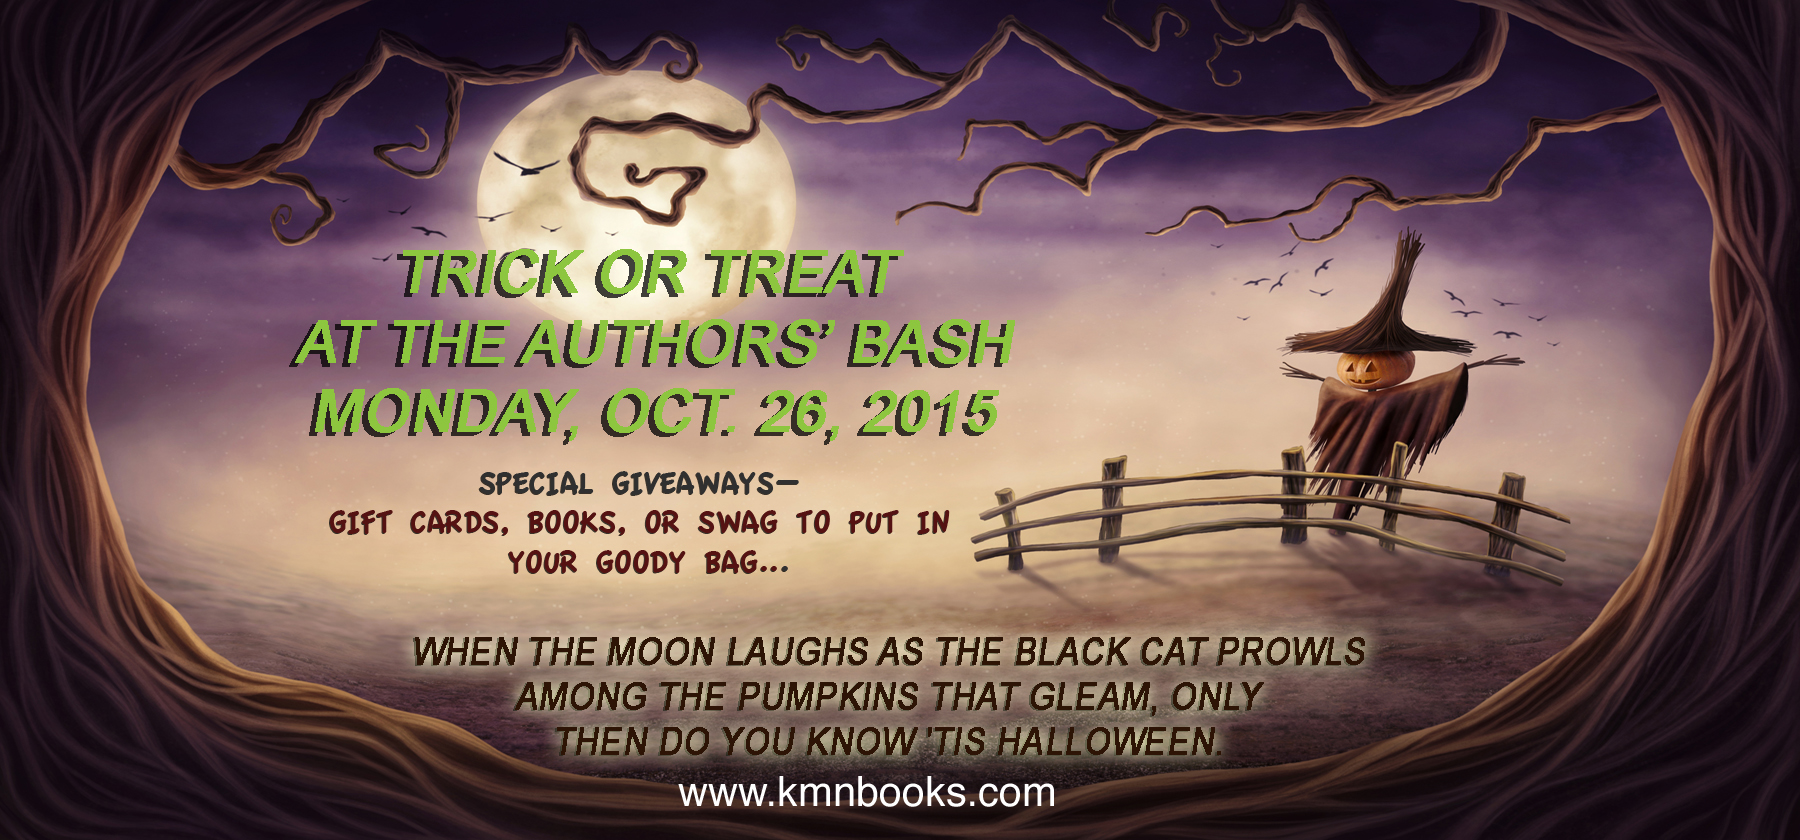 Trick or Treat at the Authors' Bash